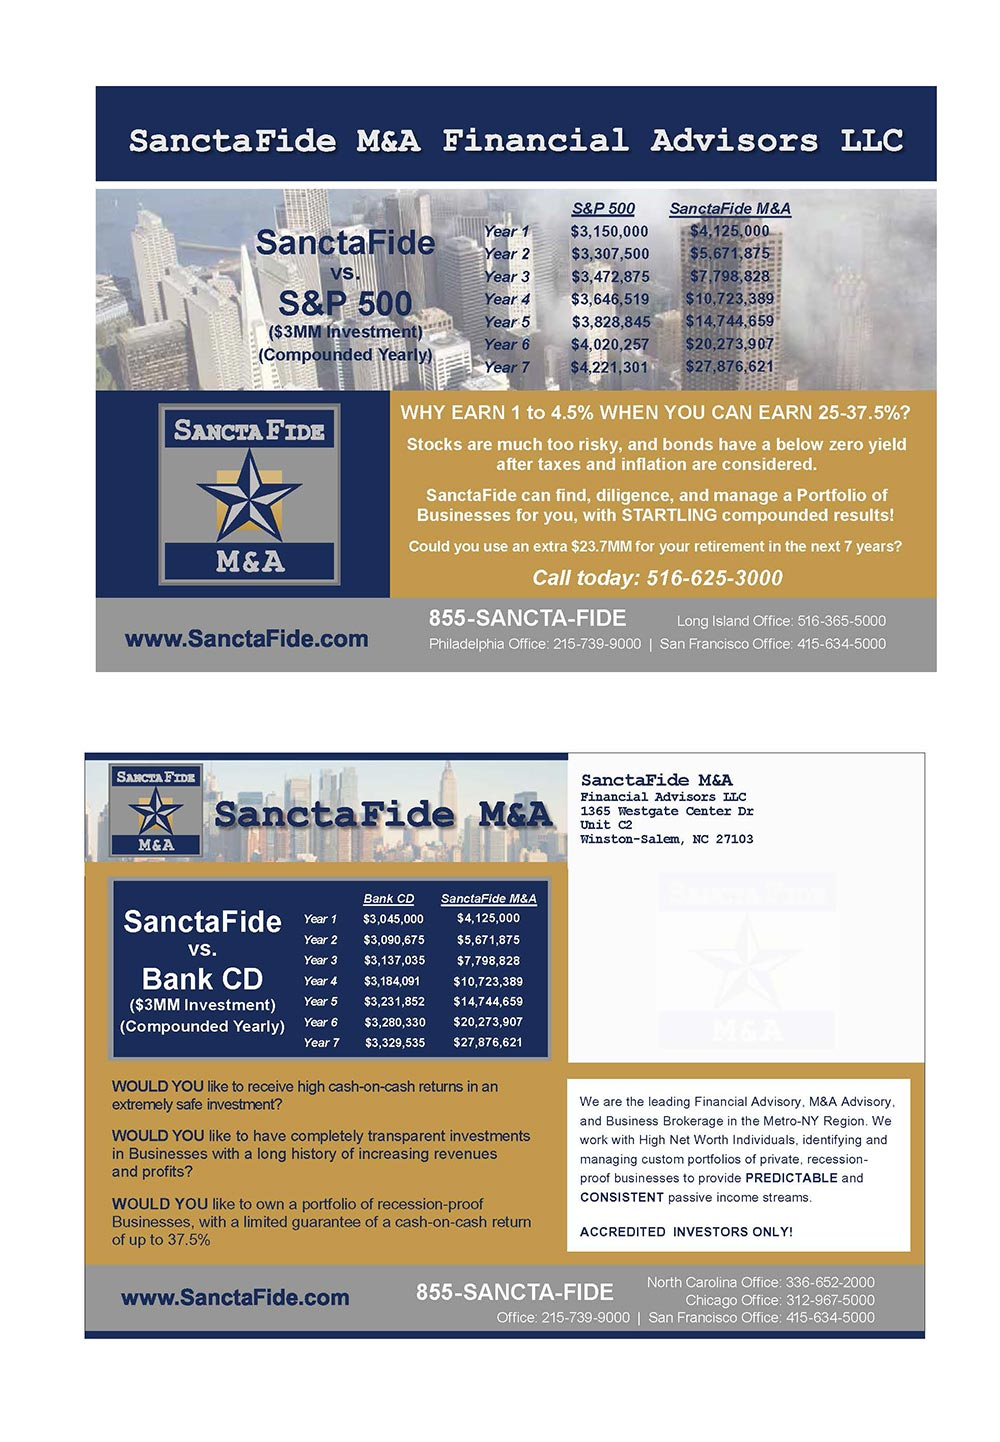 PDF Postcard Content and Design Revisions for SanctaFide M&A Financial Advisors